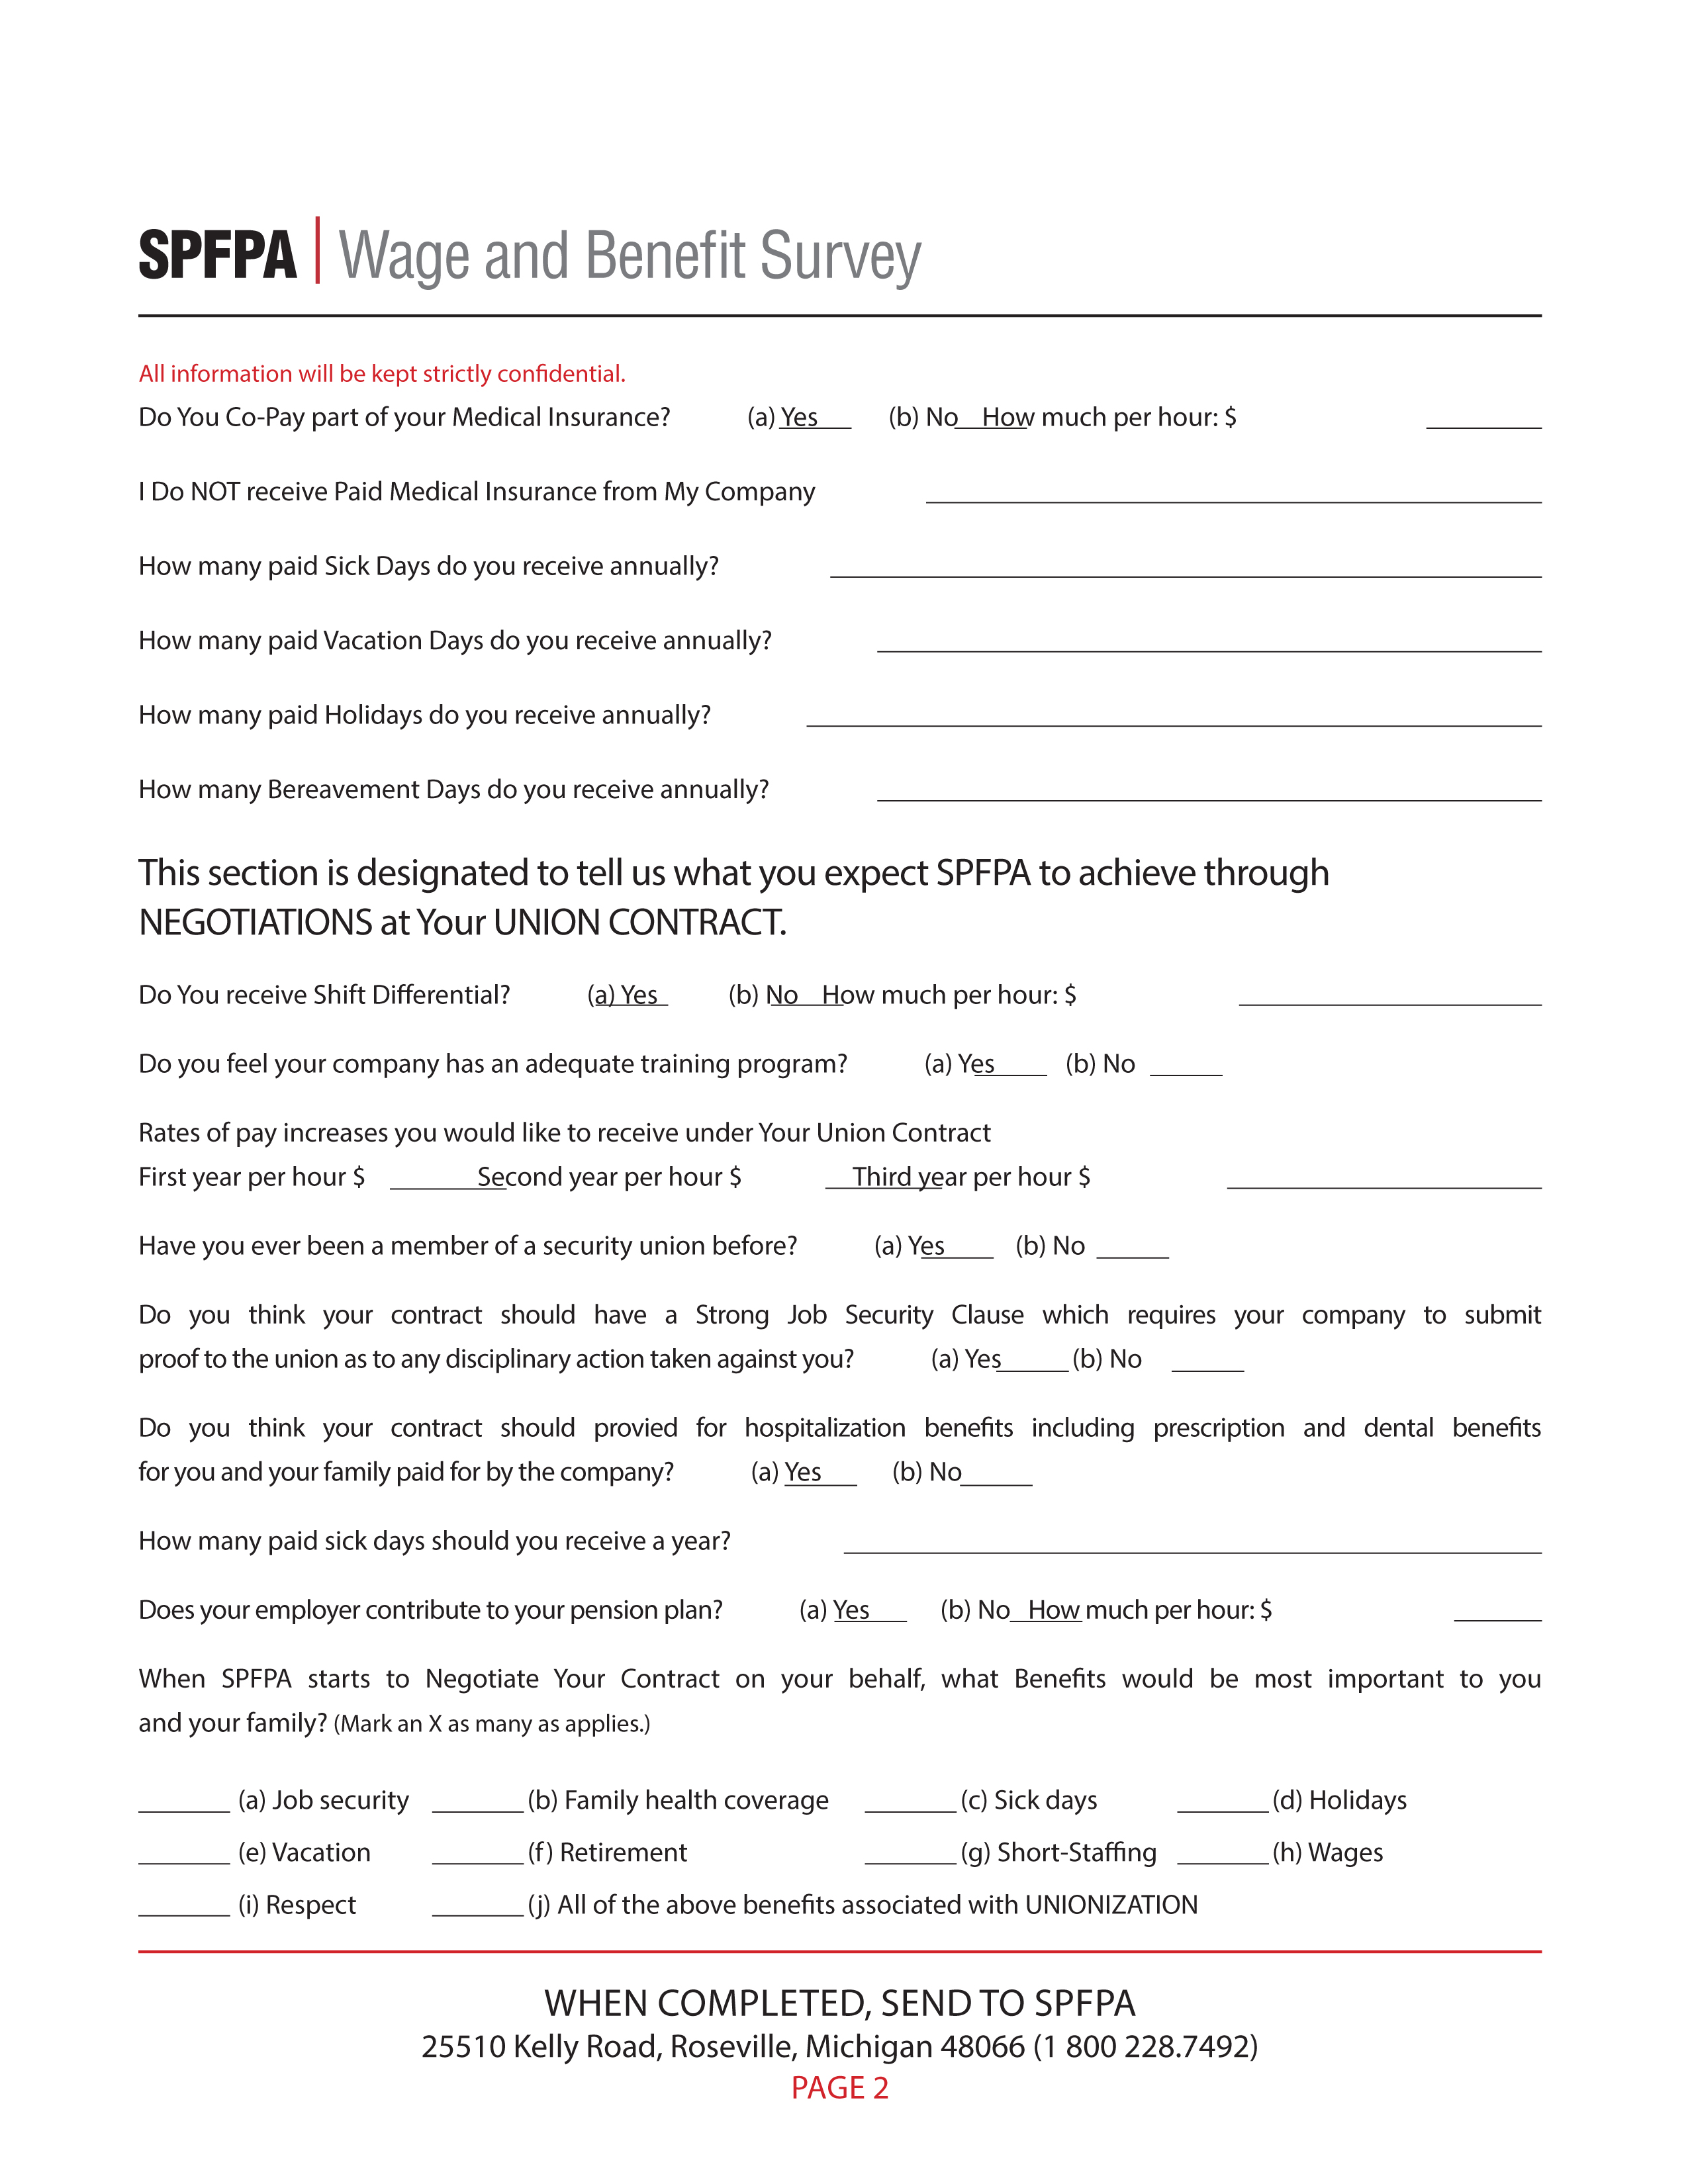 SPFPA– Wage and Benefit Survey